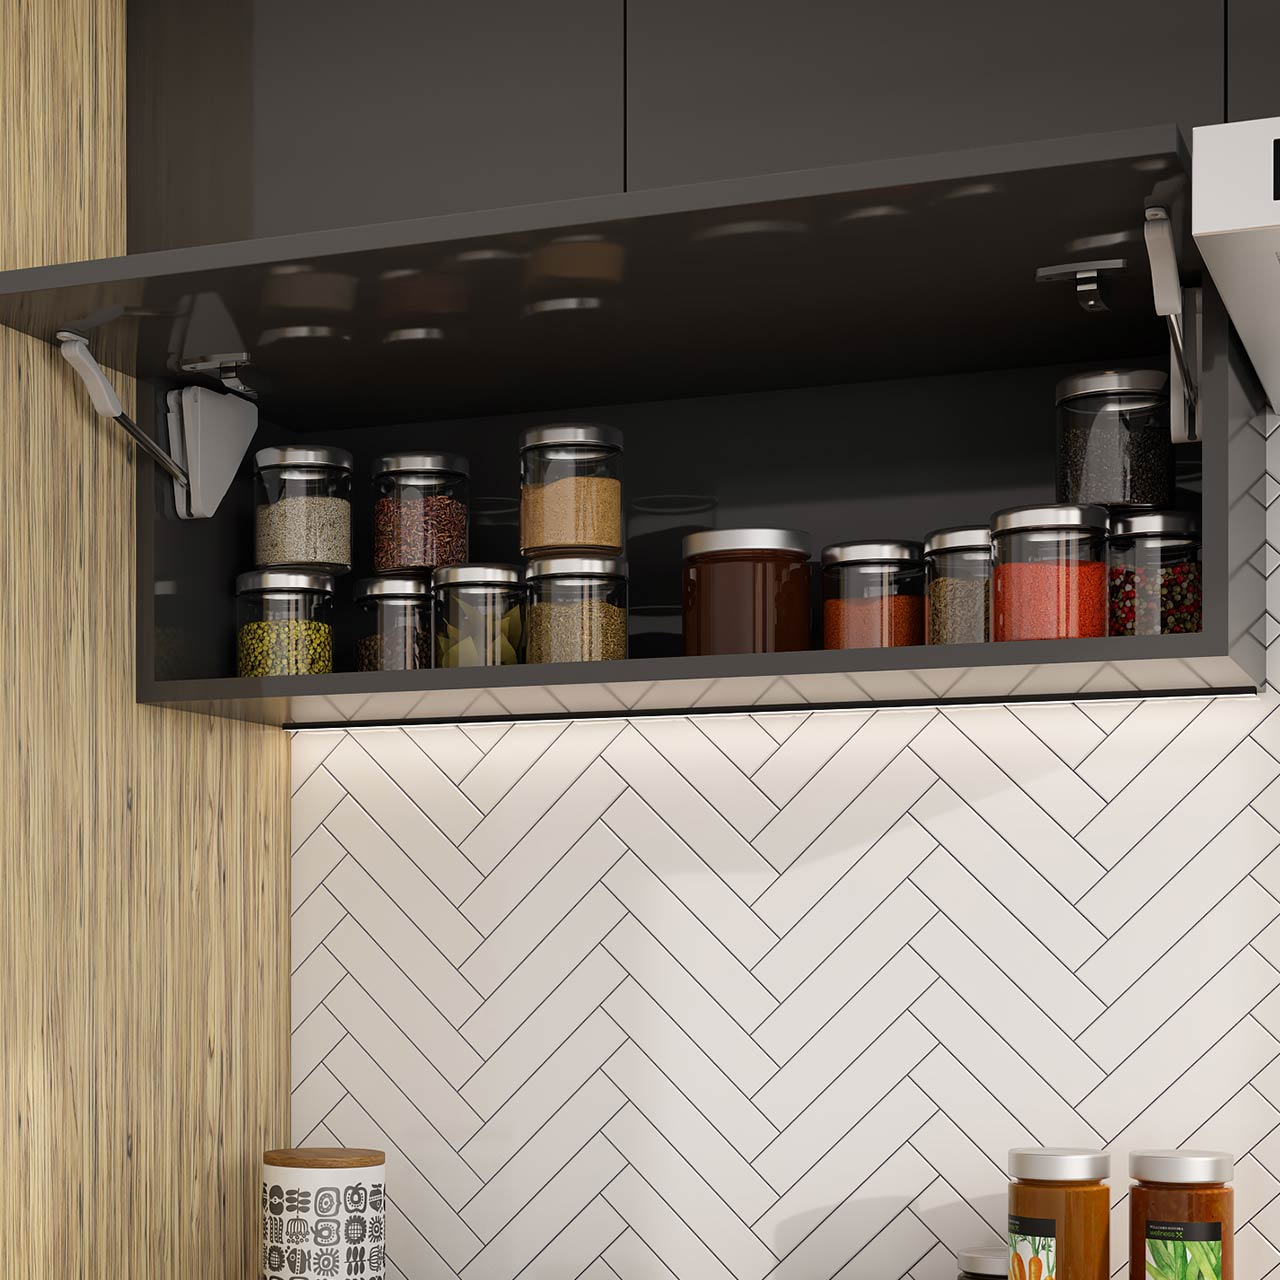 Kitchen Lifts to enhance storage space in your Modular Kitchen.